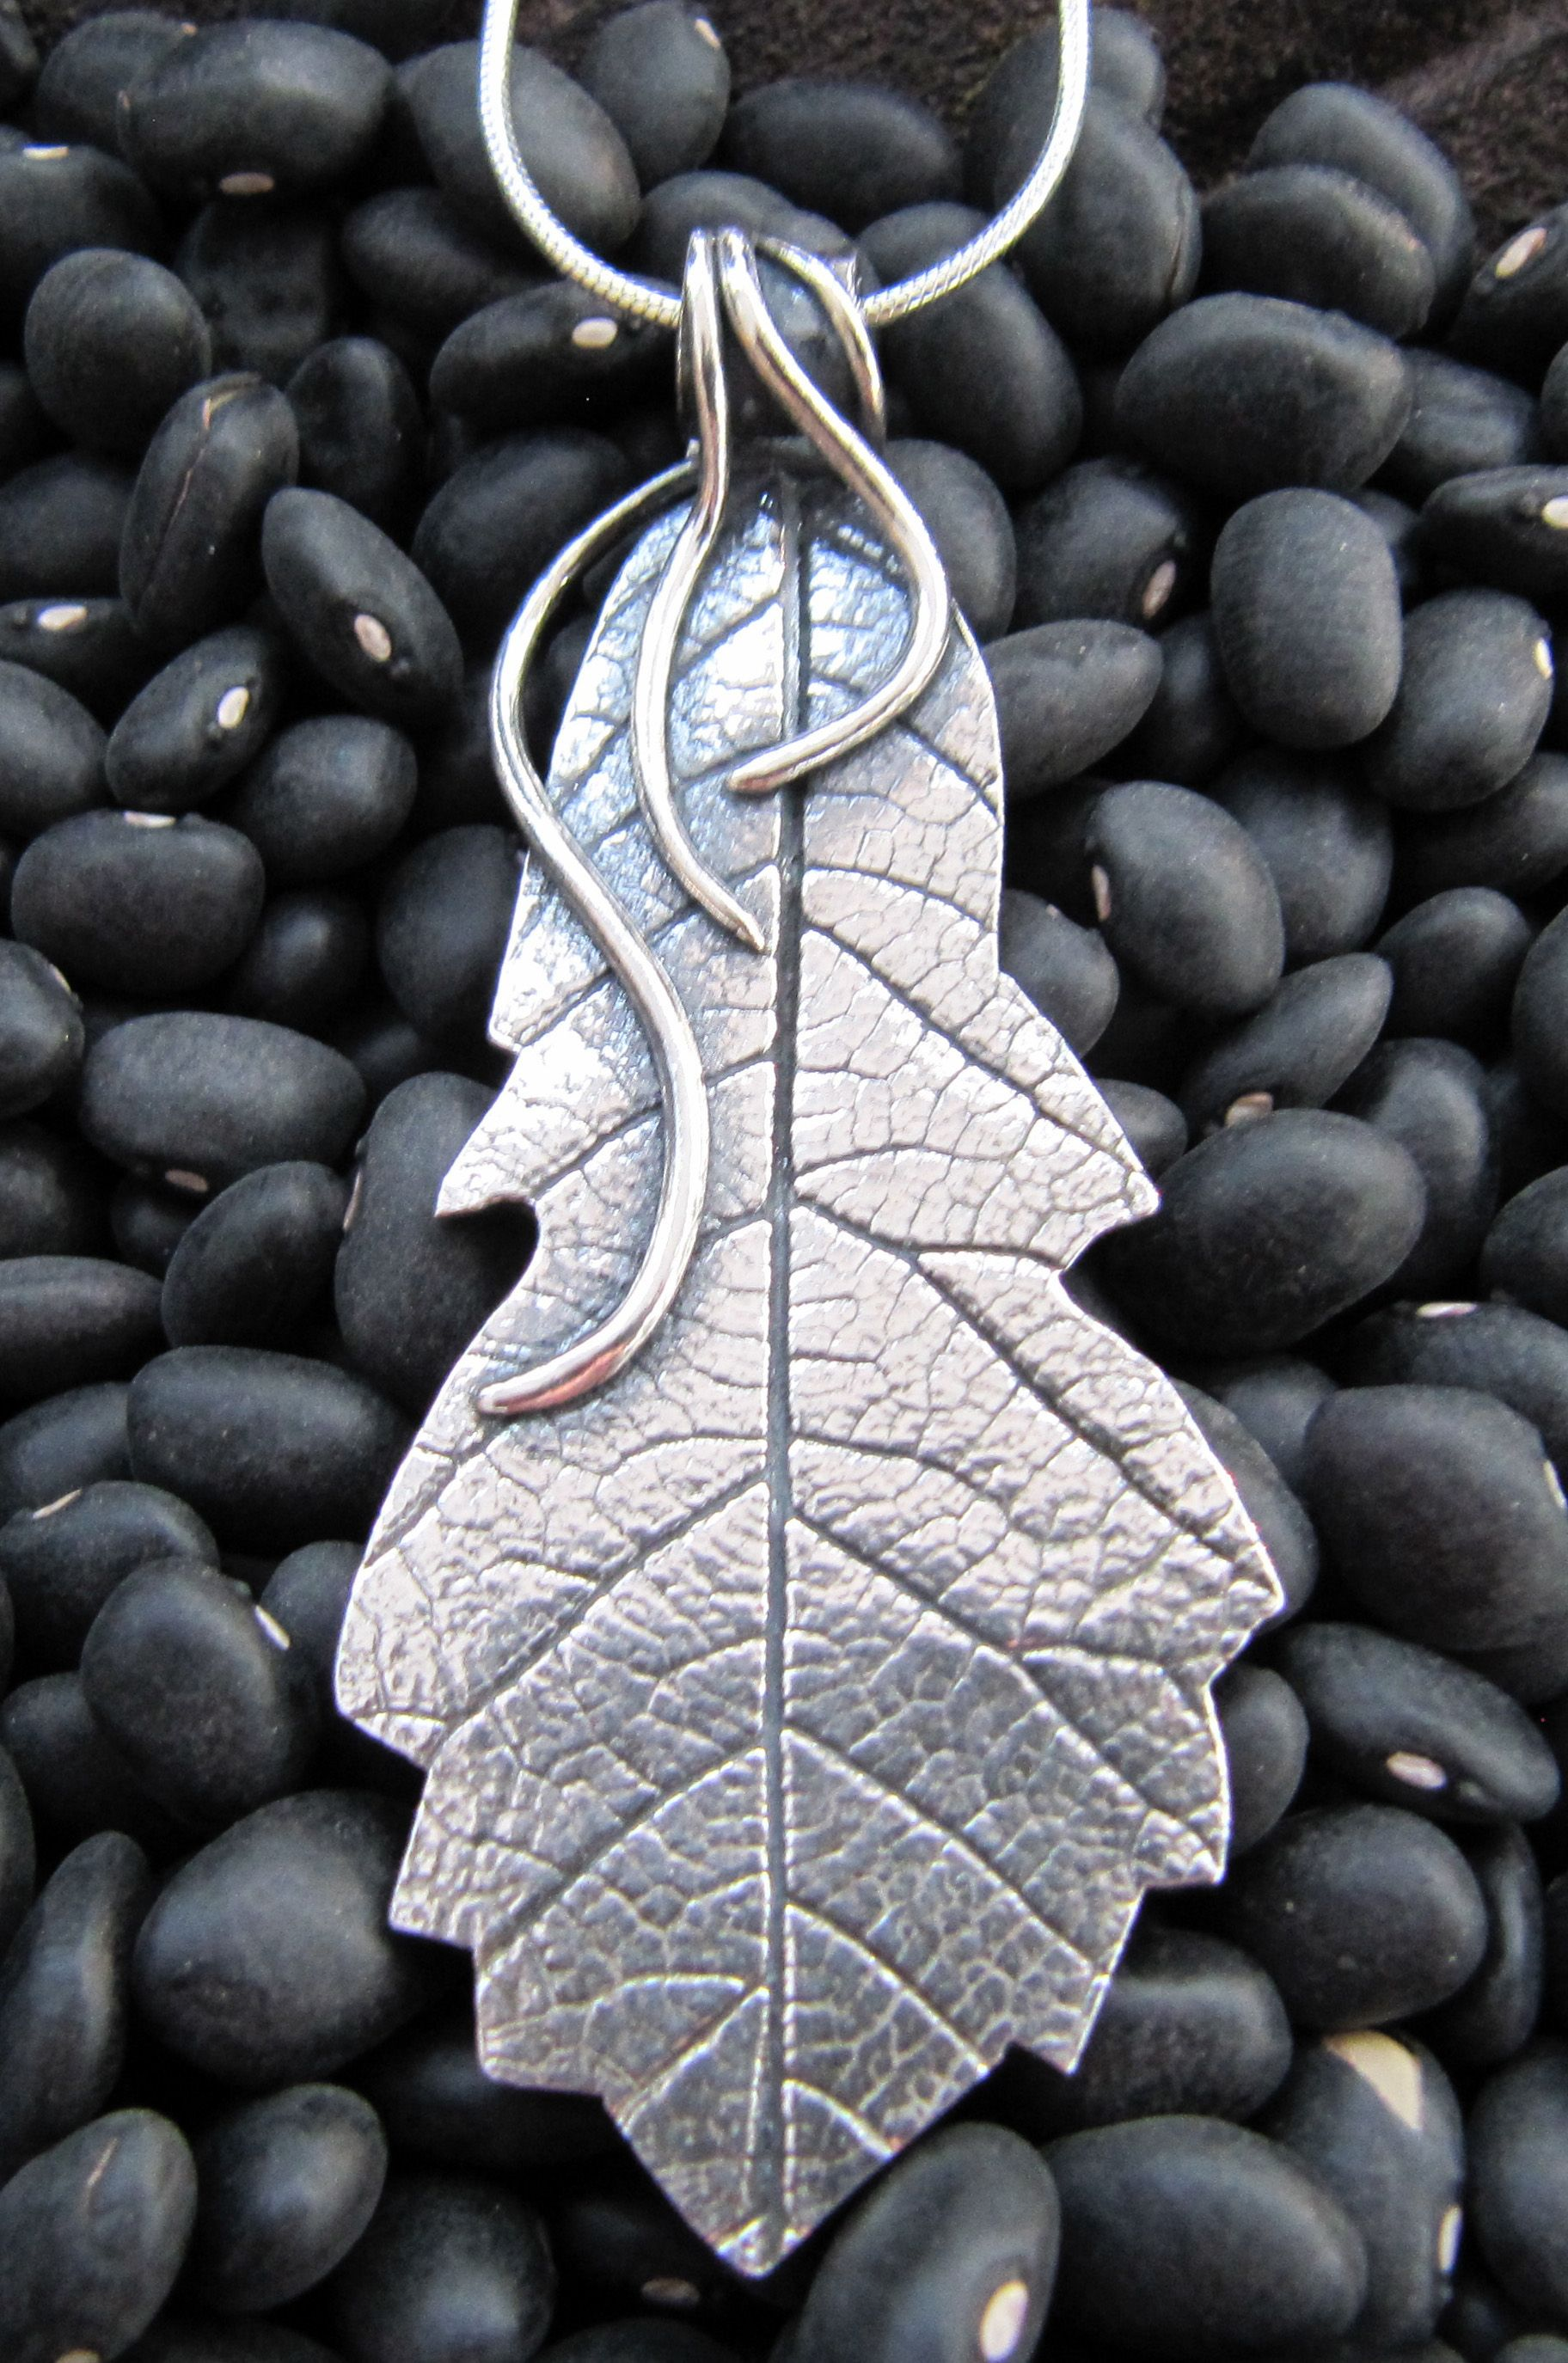 Make your own sterling silver pendant out of precious metal clay 5 make your own sterling silver pendant out of precious metal clay 511 at mozeypictures